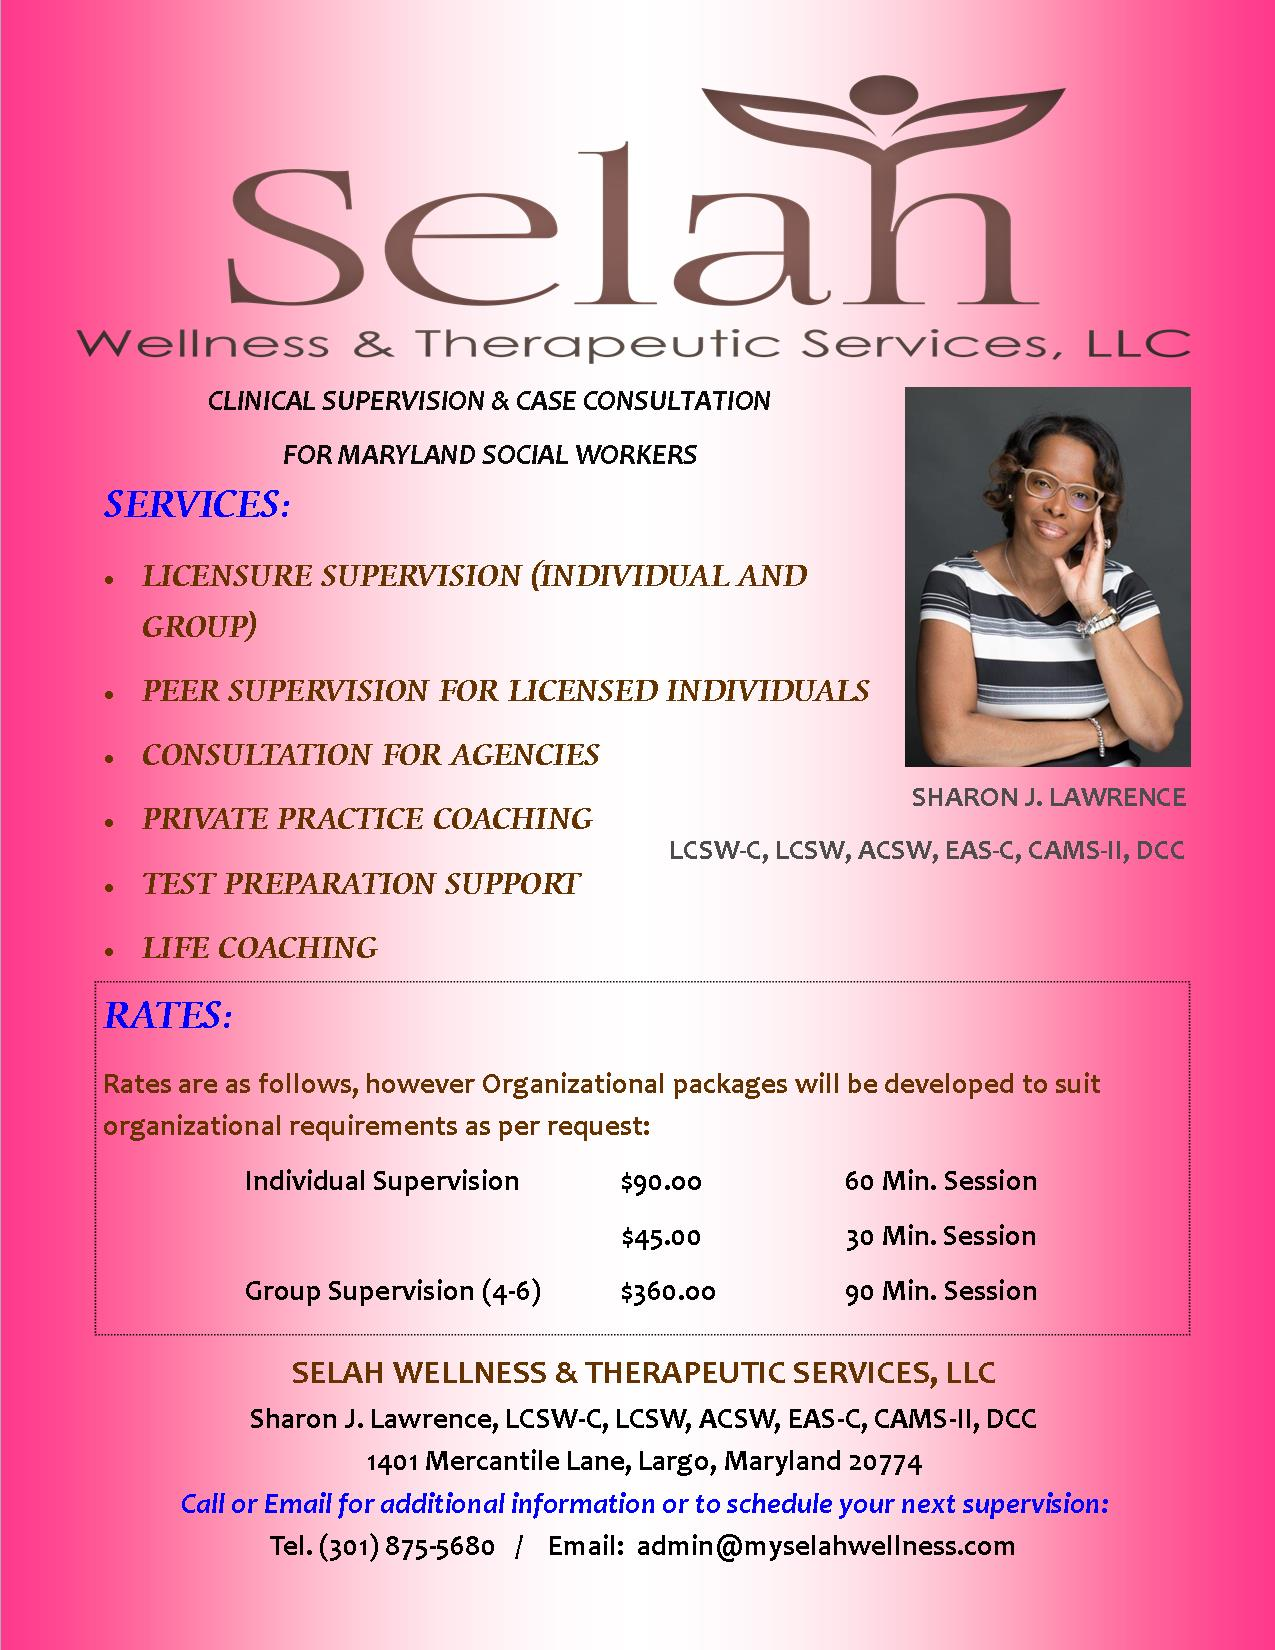 Clinical Supervision & Case Consultation for Maryland Social Workers - Make Contact Today to sign up for your individual or group supervision!Email: Admin@myselahwellness.com